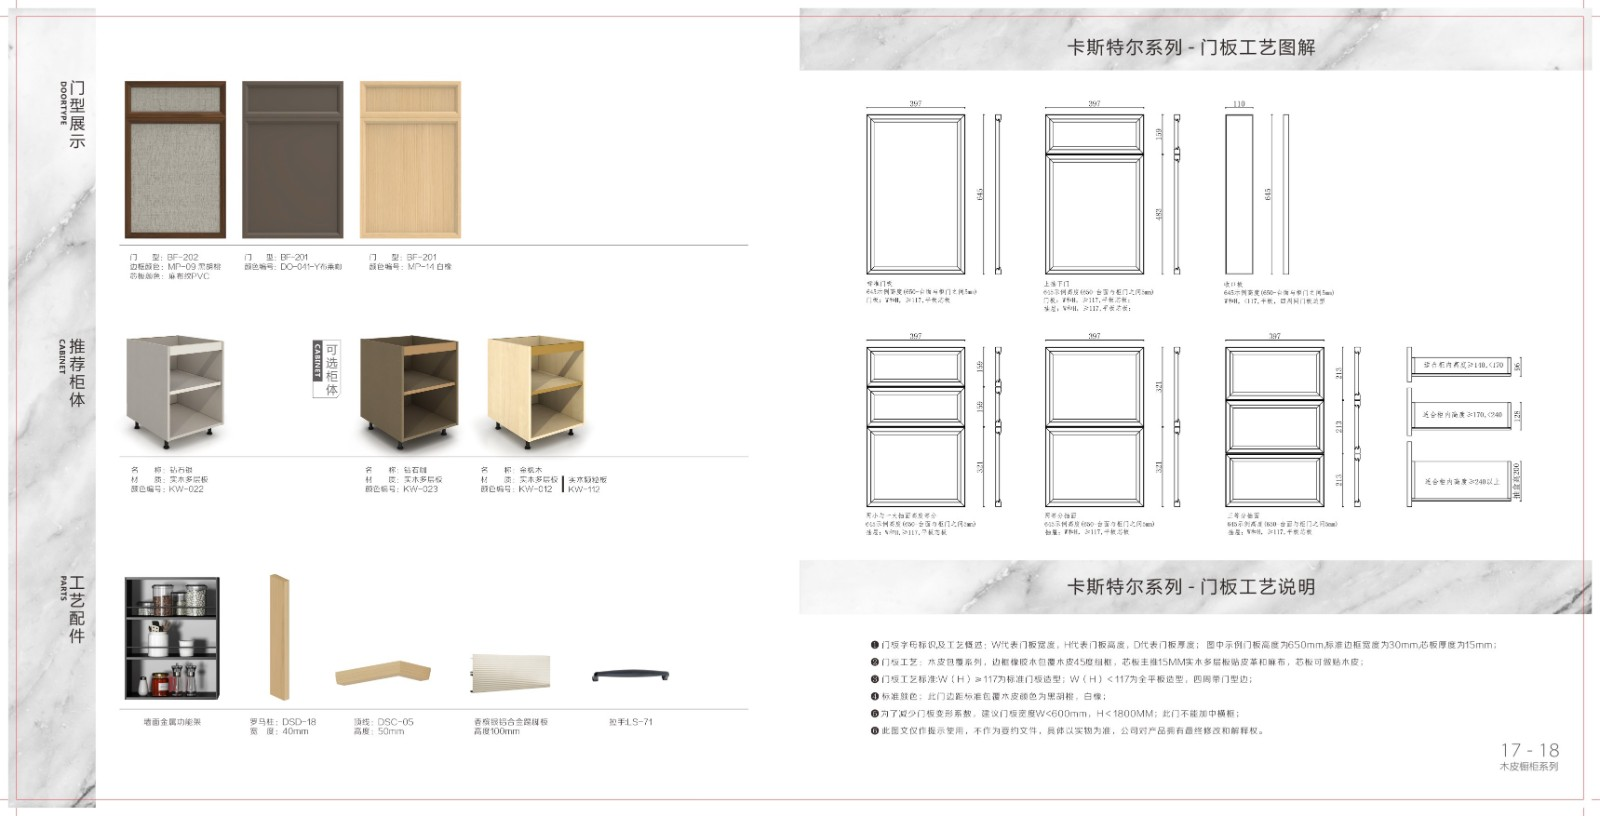 Sendiao Furniture sdk05 custom wood kitchen cabinets company a living room-7